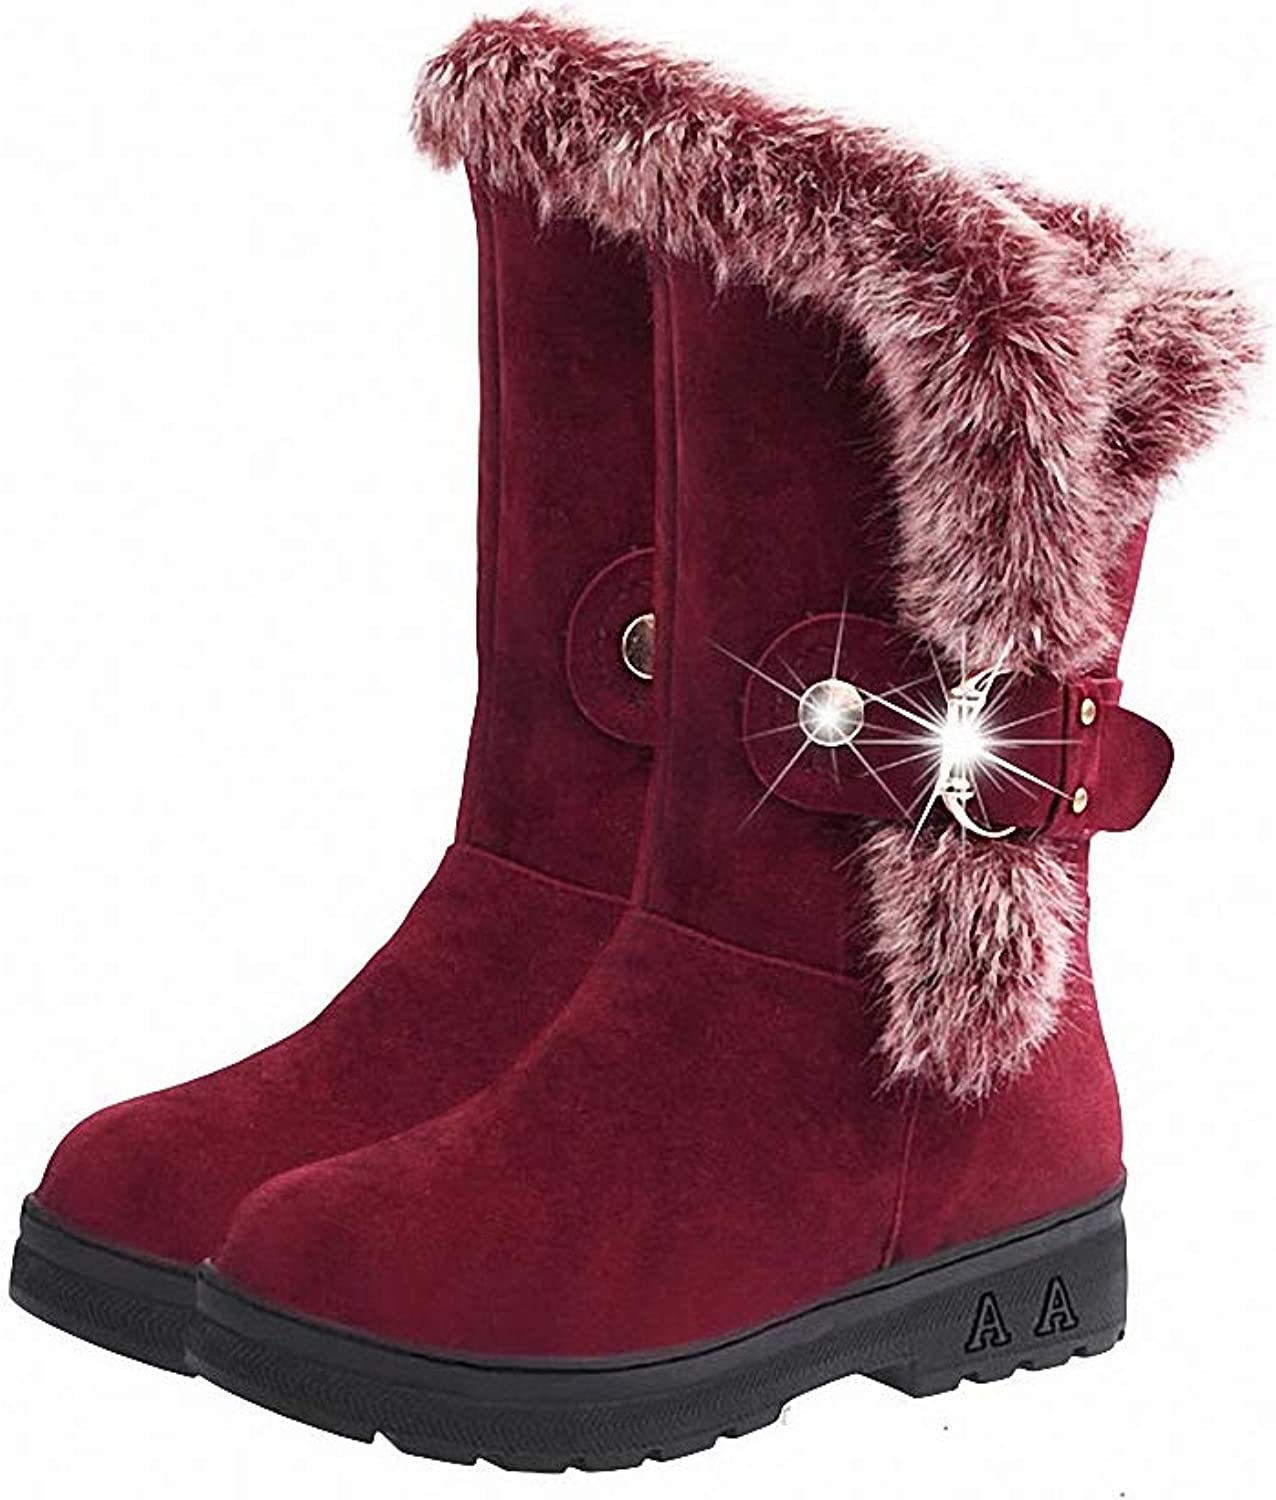 Kyle Walsh Pa Women Snow Boots Round Toe Warm Fur Mid-Calf Soft Female Winter Booties